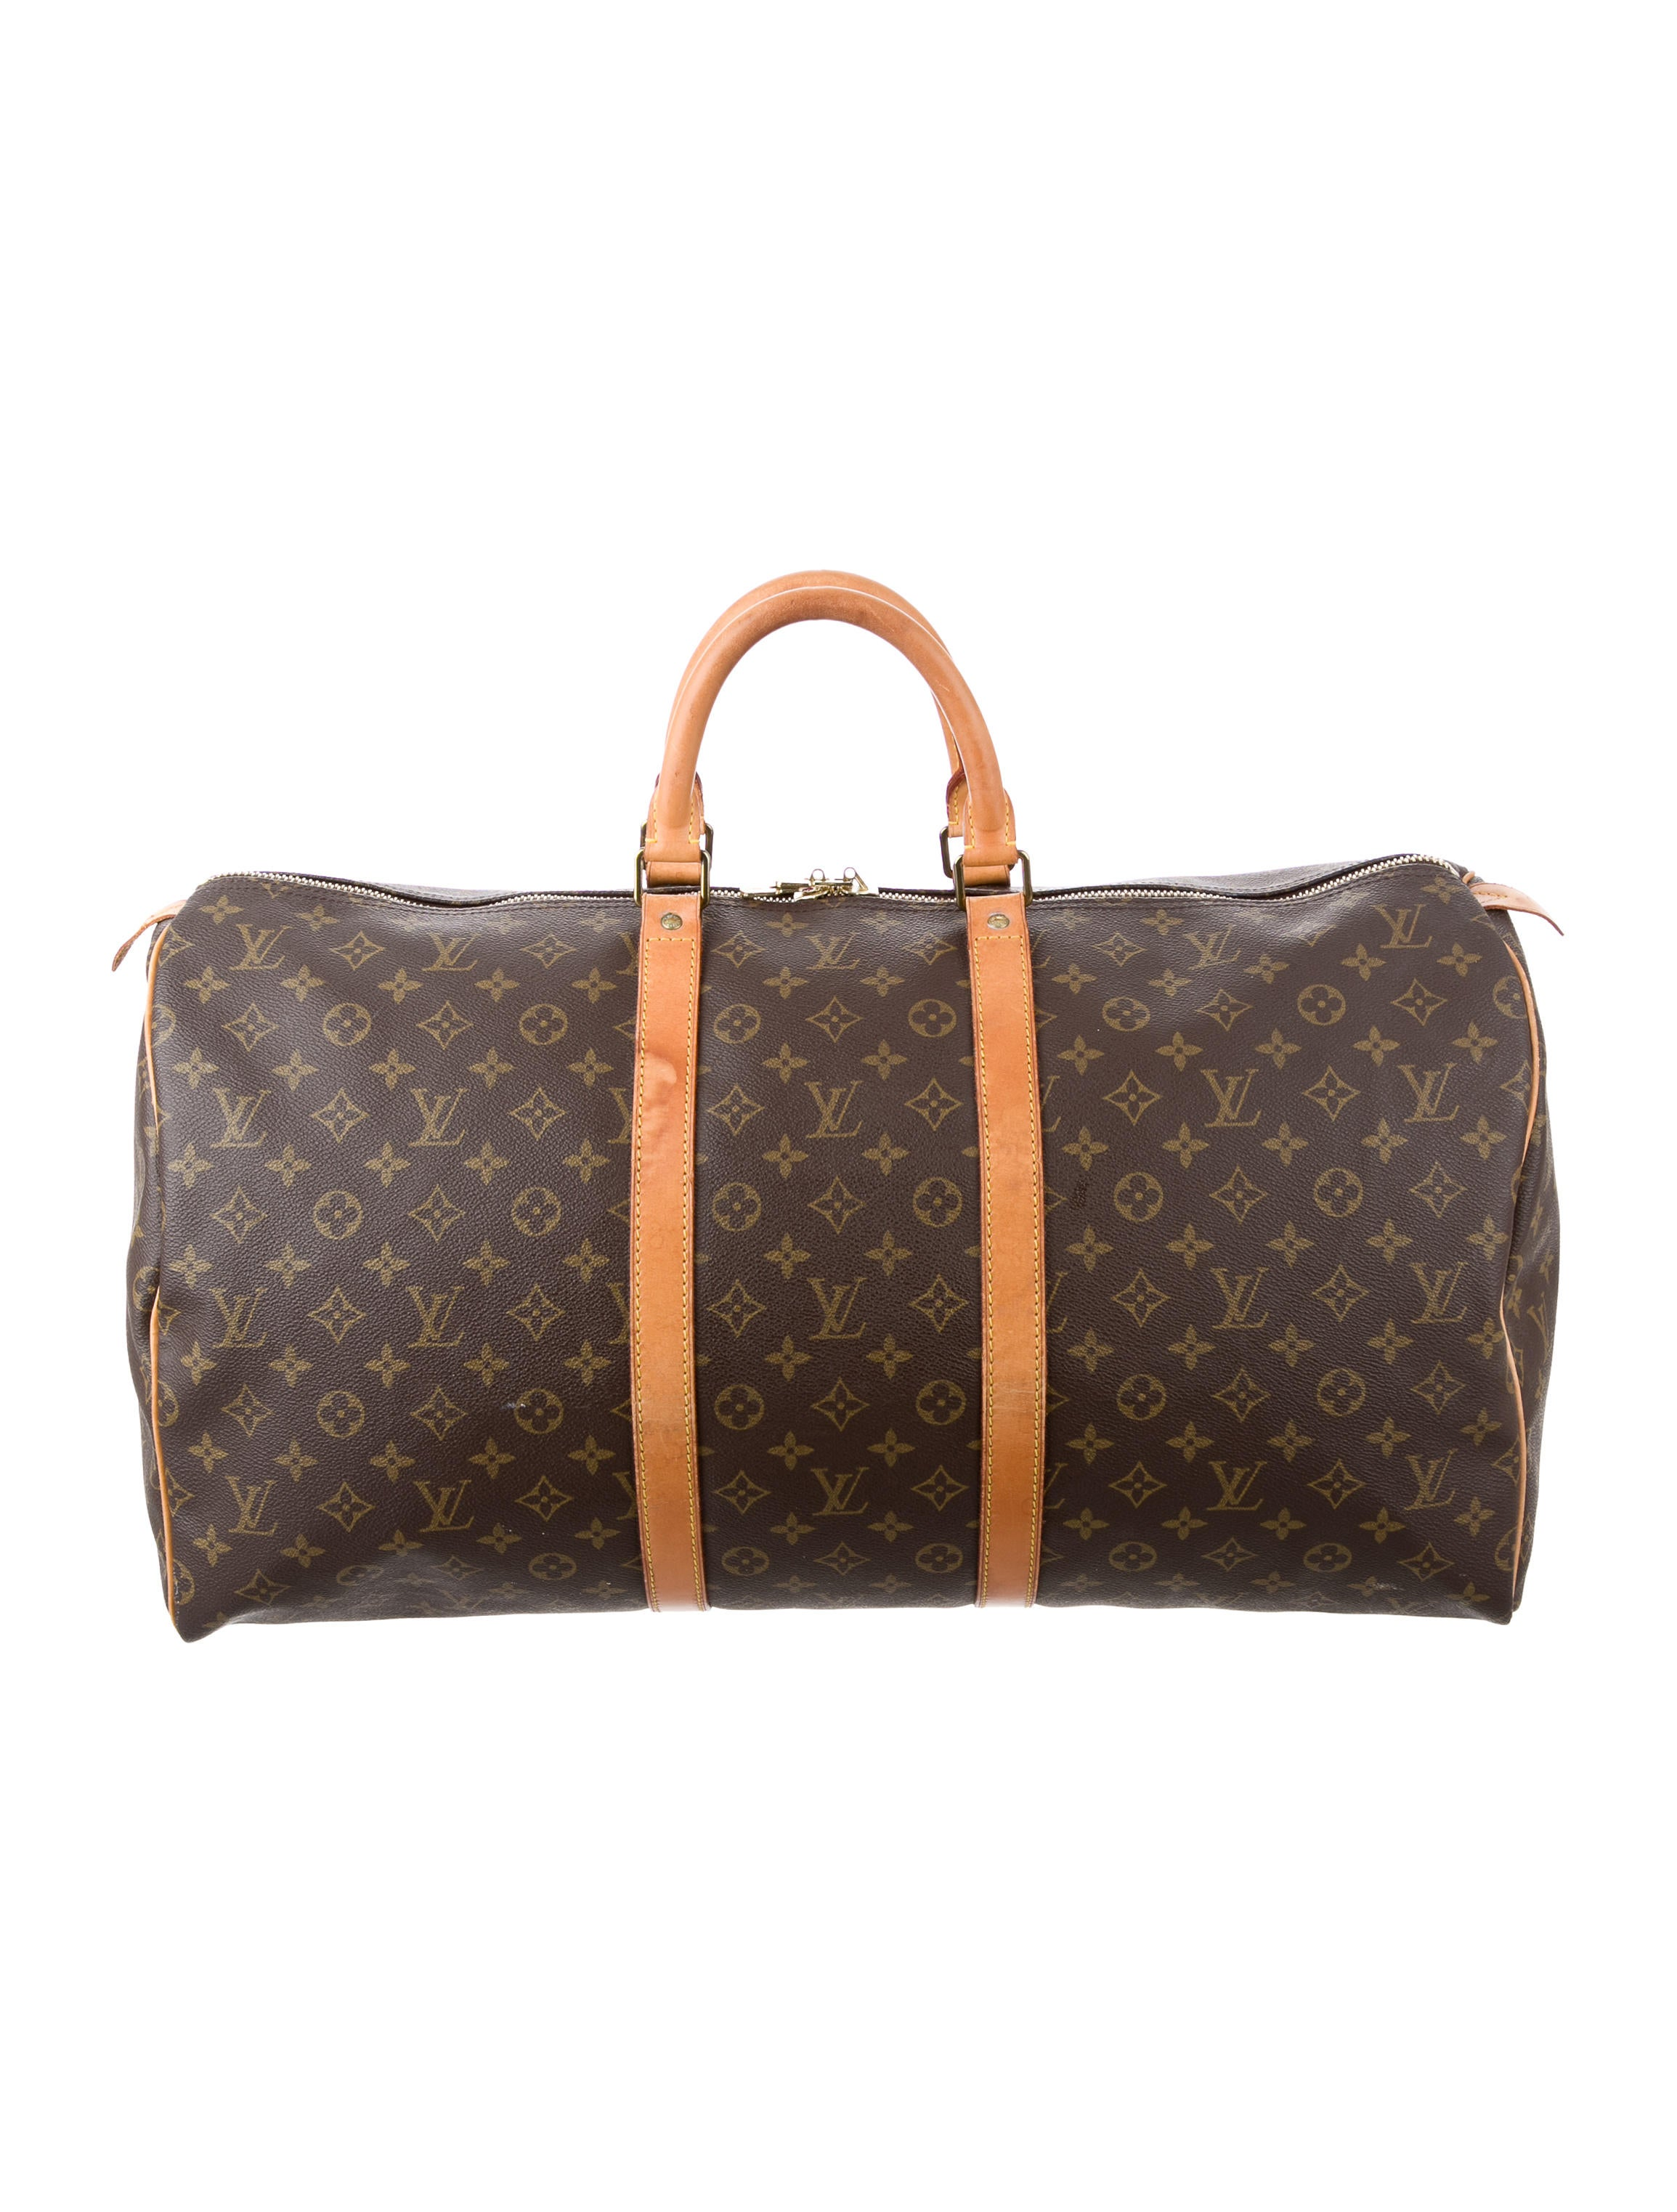 louis vuitton monogram keepall 55 handbags lou114769. Black Bedroom Furniture Sets. Home Design Ideas